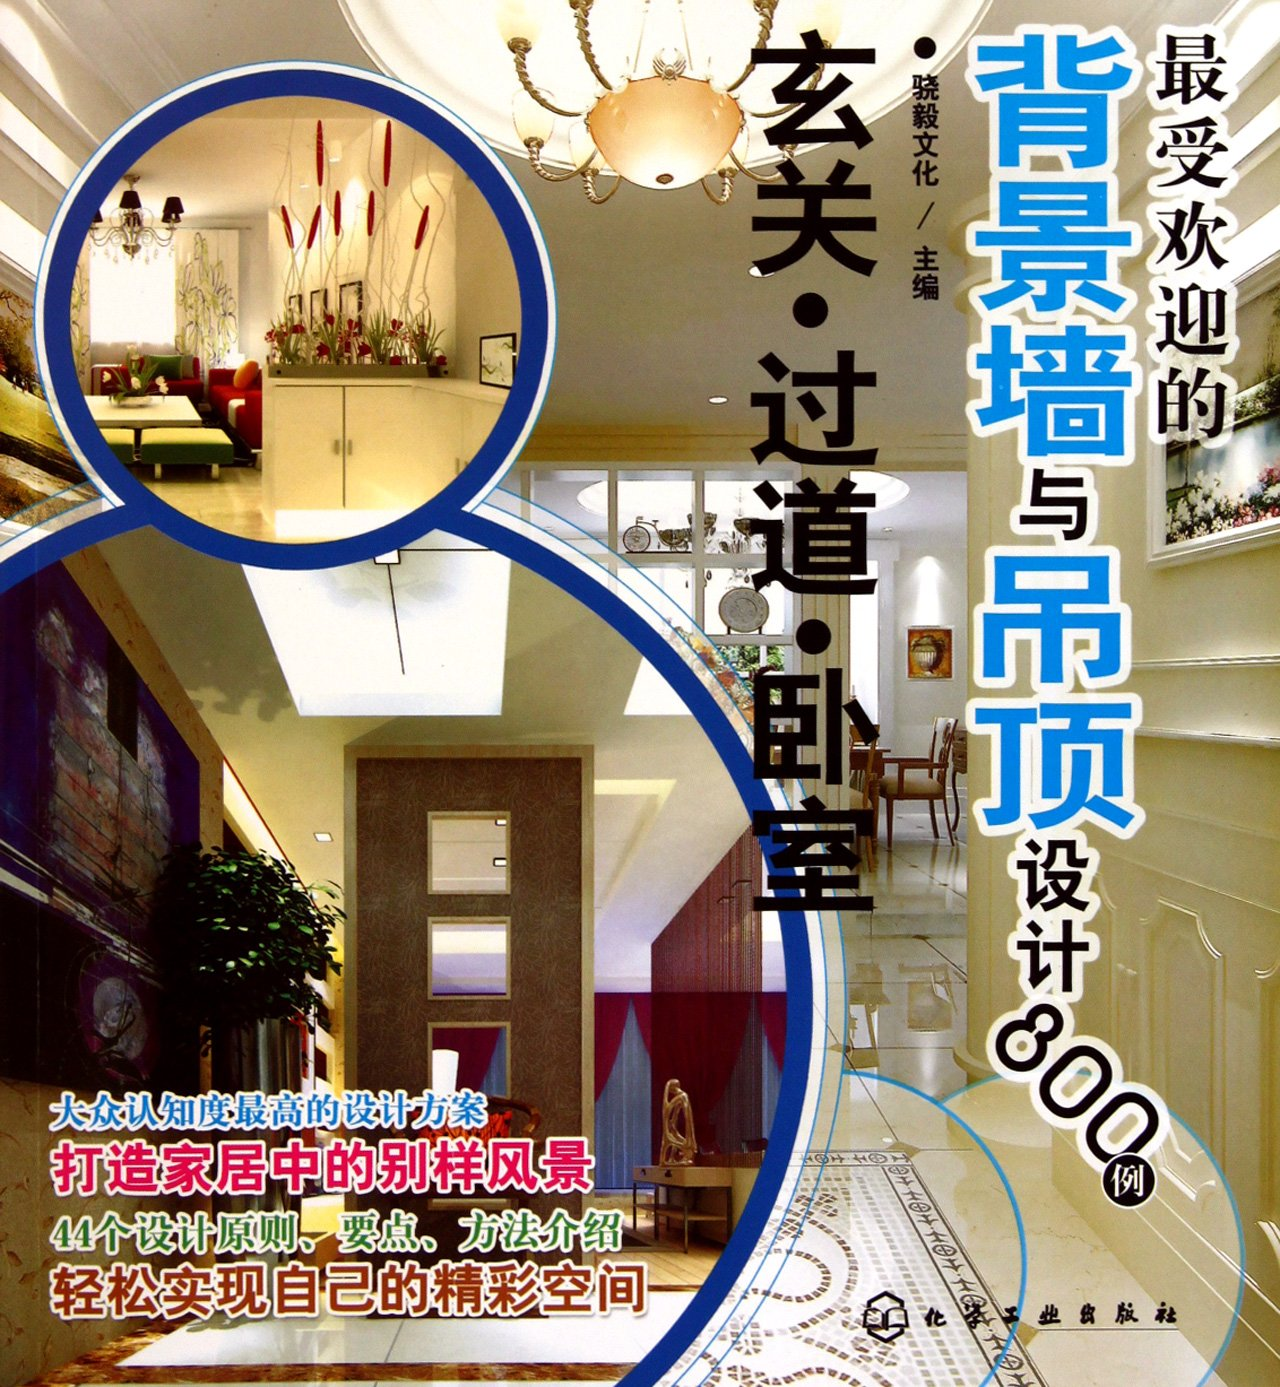 Read Online 800 cases of the most popular background wall and ceiling design  - porch, hallway, bedroom (Chinese Edition) pdf